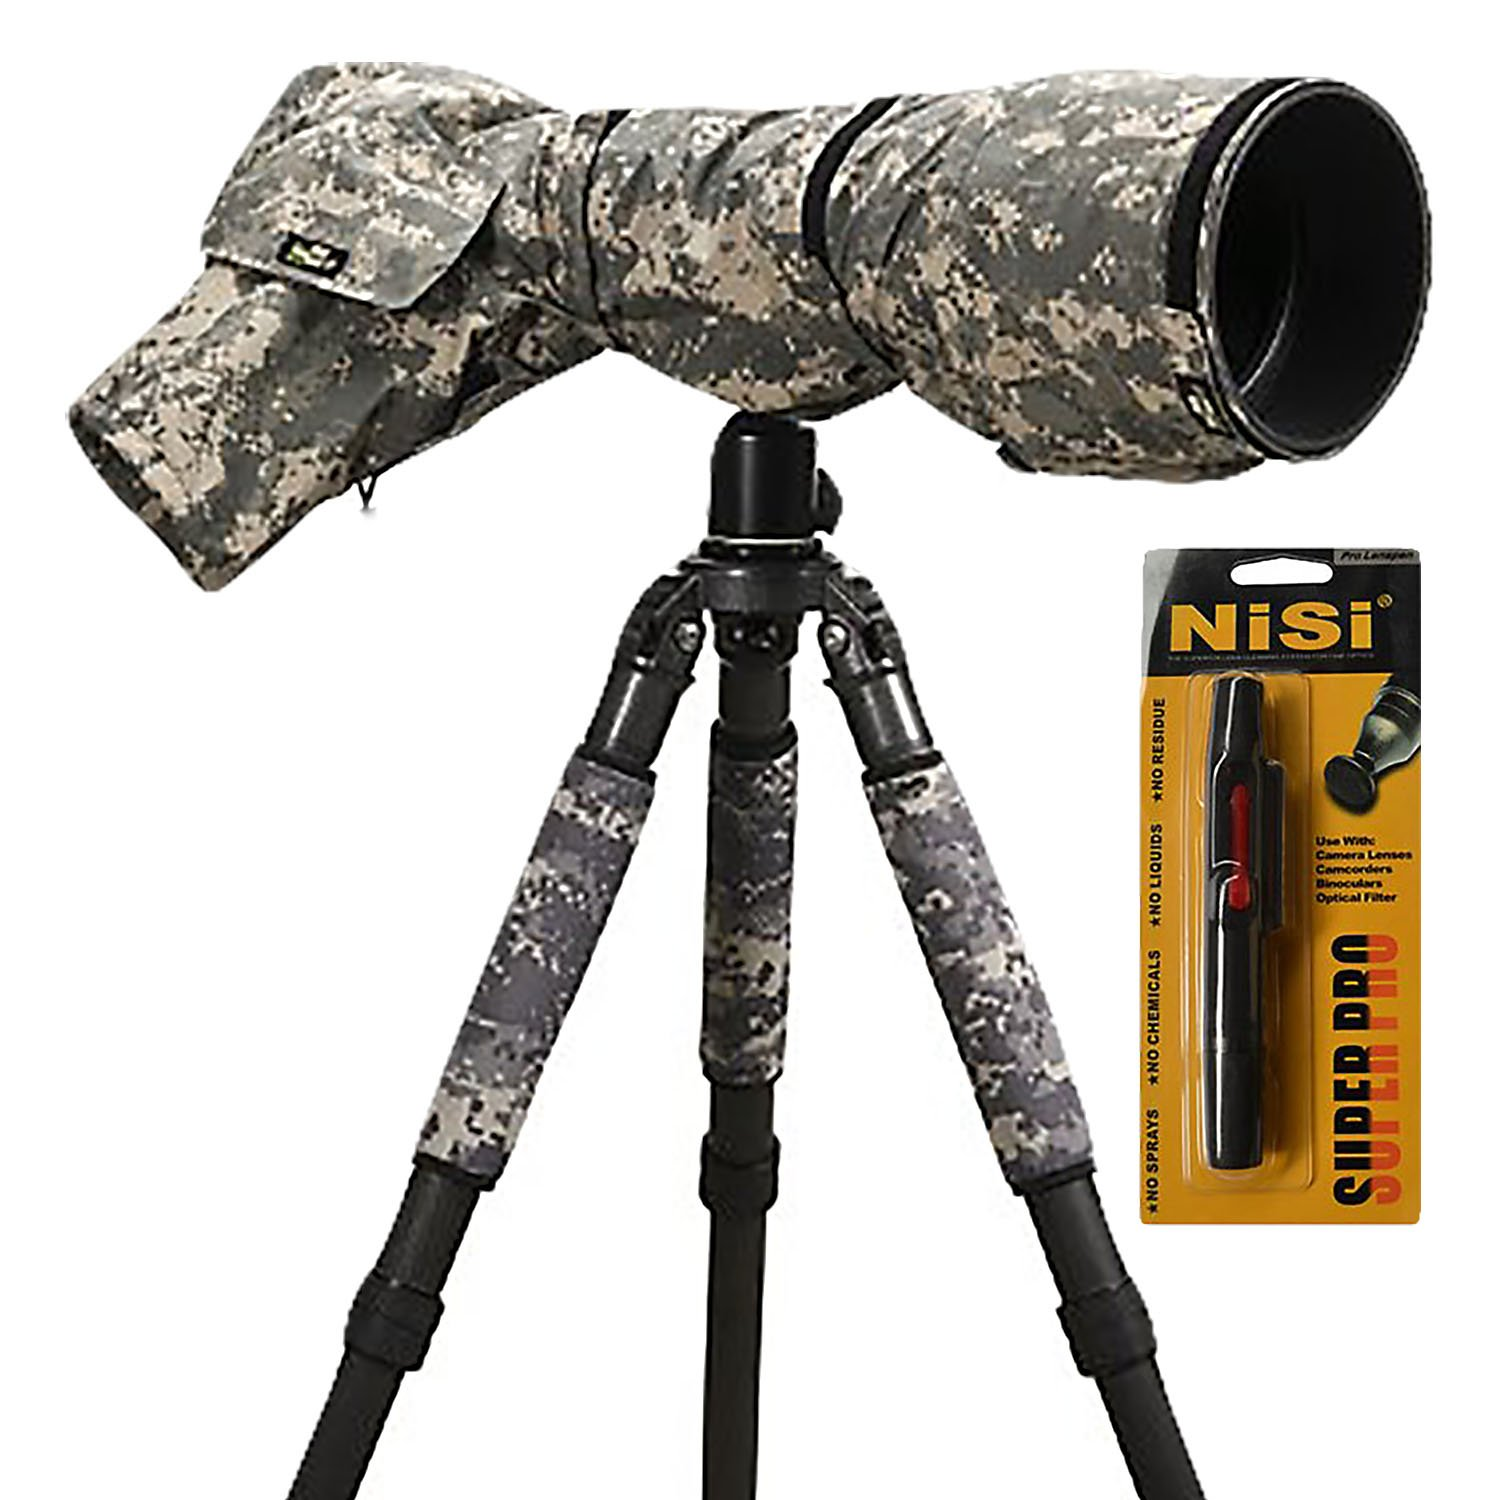 LensCoat RainCoat Pro (Digital Camo) Cover sleeve protection for Camera and Lens LCRCPDC by LENSCOAT